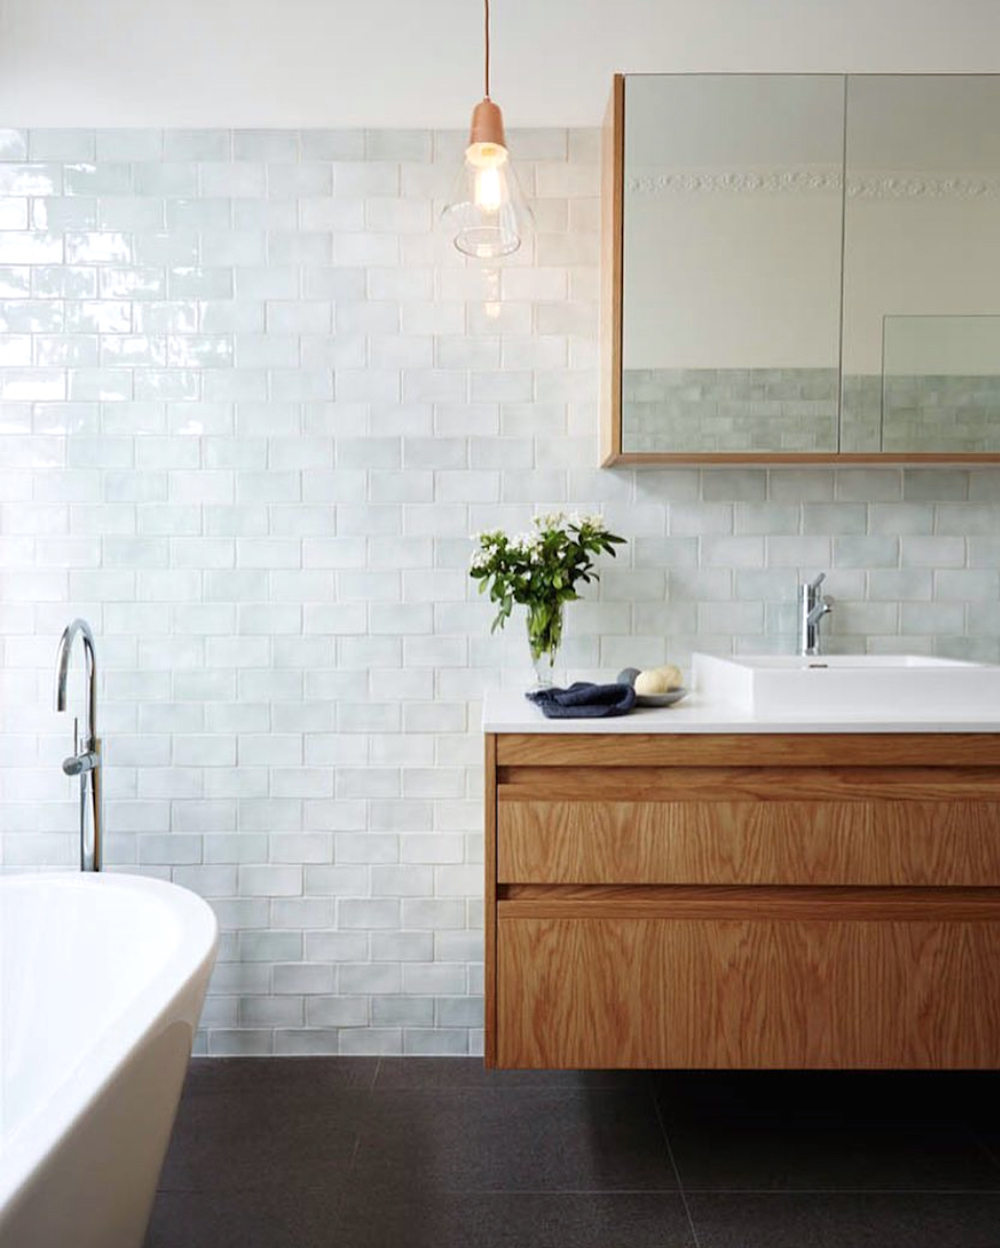 Bathroom renovation tips by First Sense || Tonal white glazed tiles